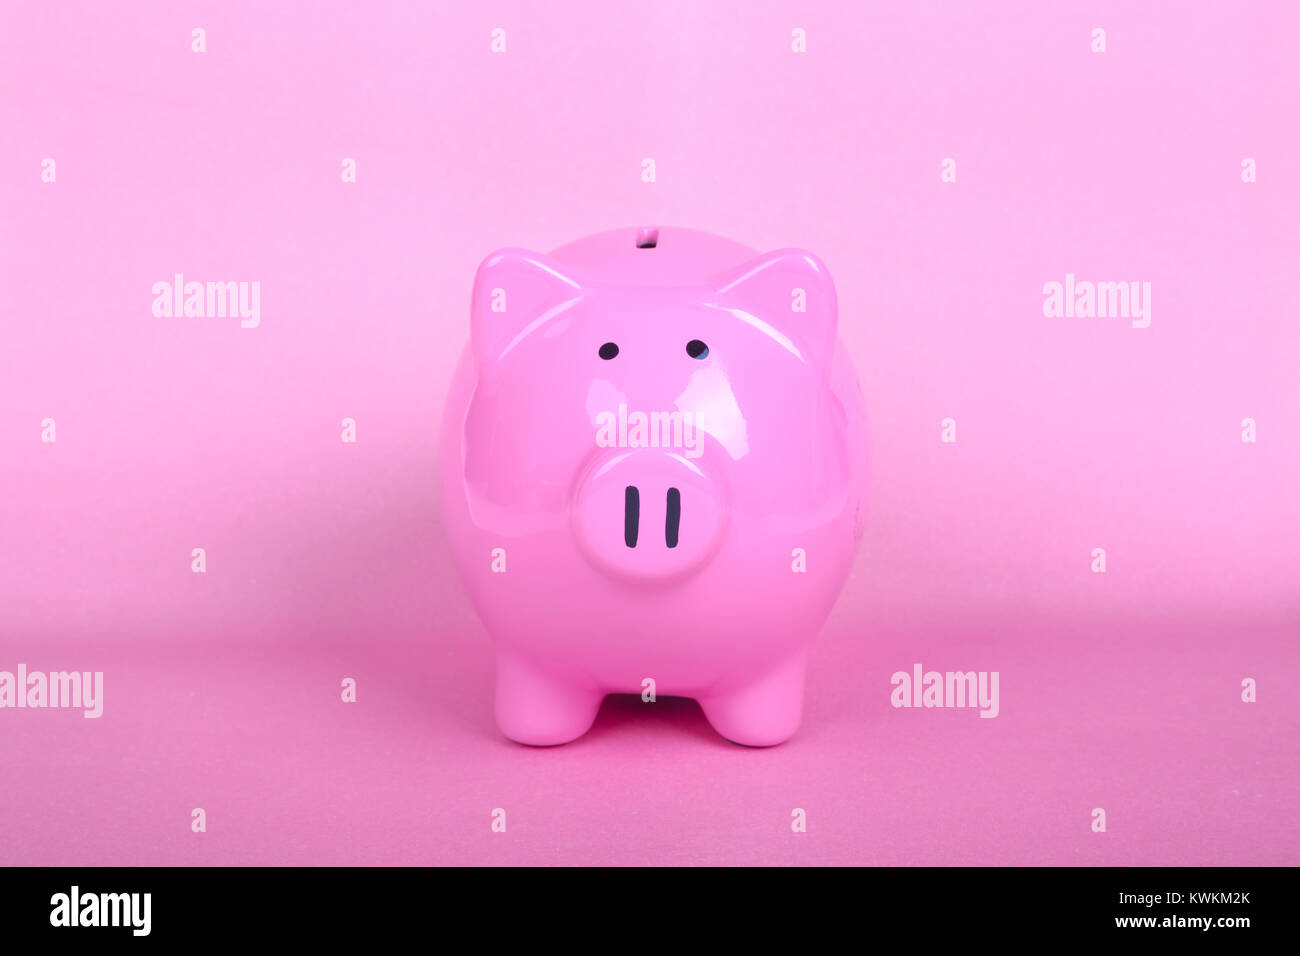 Piggy bank on soft pink background. - Stock Image